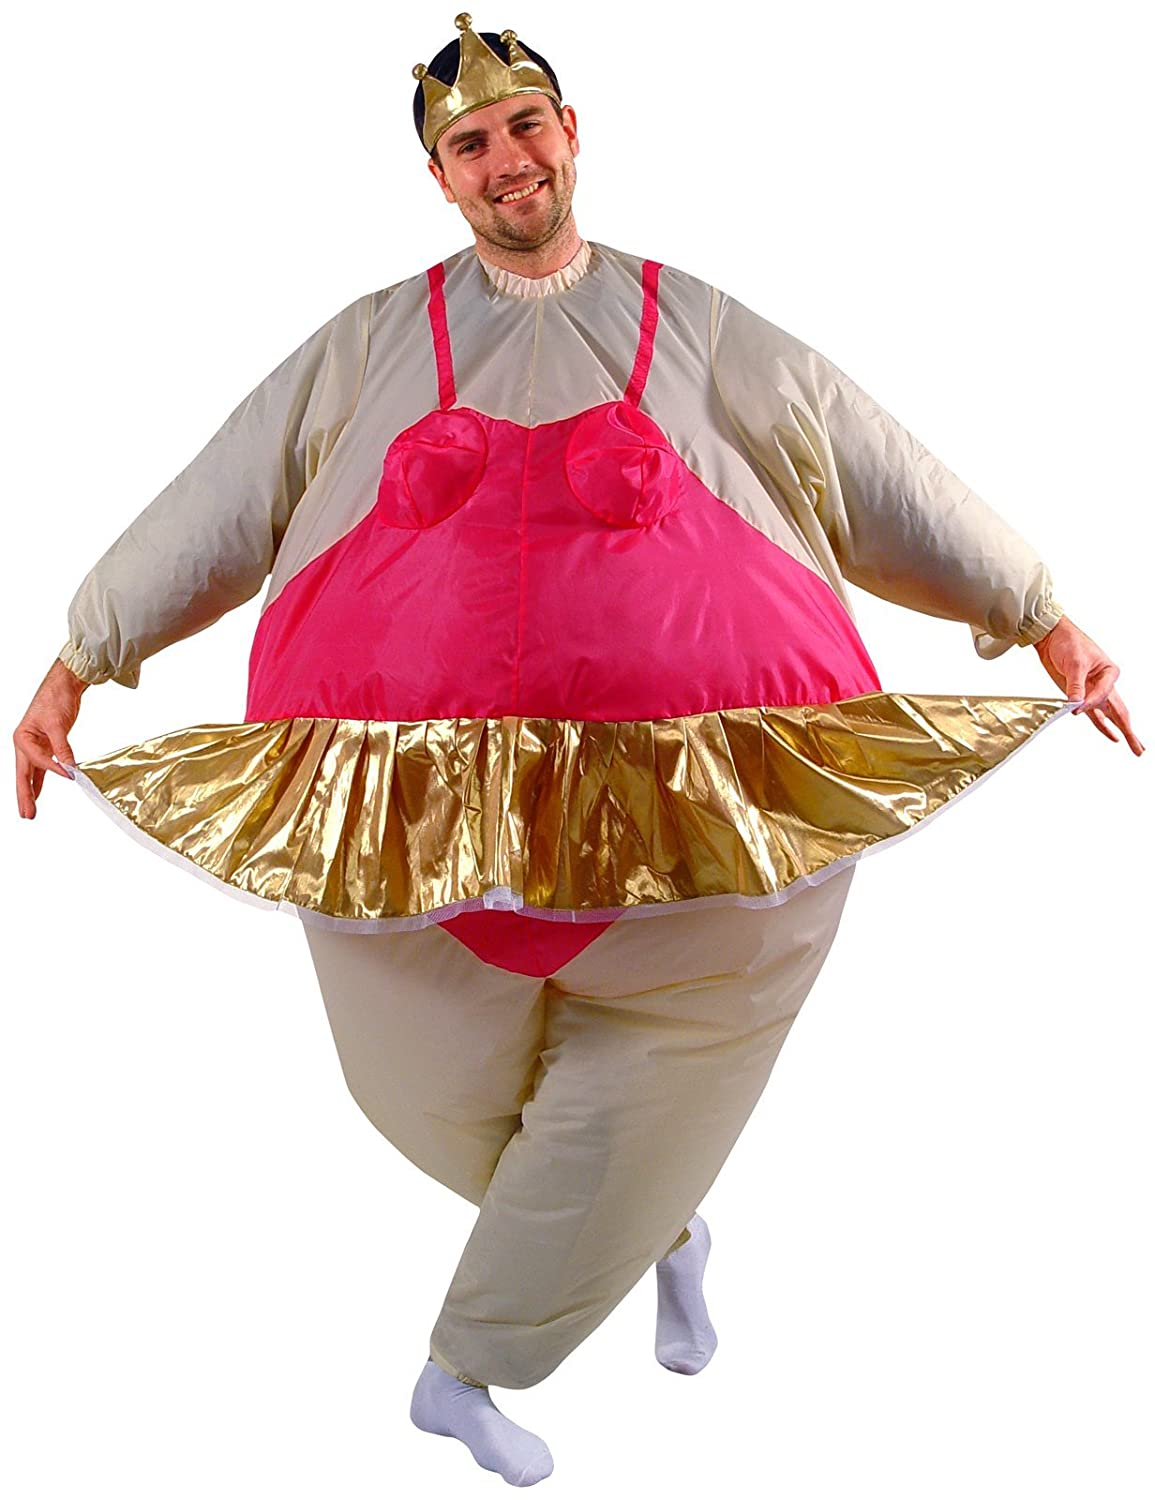 Amazon.com Ballerina Inflatable Adult Costume - Size Standard - One Size Fits Most Clothing  sc 1 st  Amazon.com & Amazon.com: Ballerina Inflatable Adult Costume - Size Standard - One ...